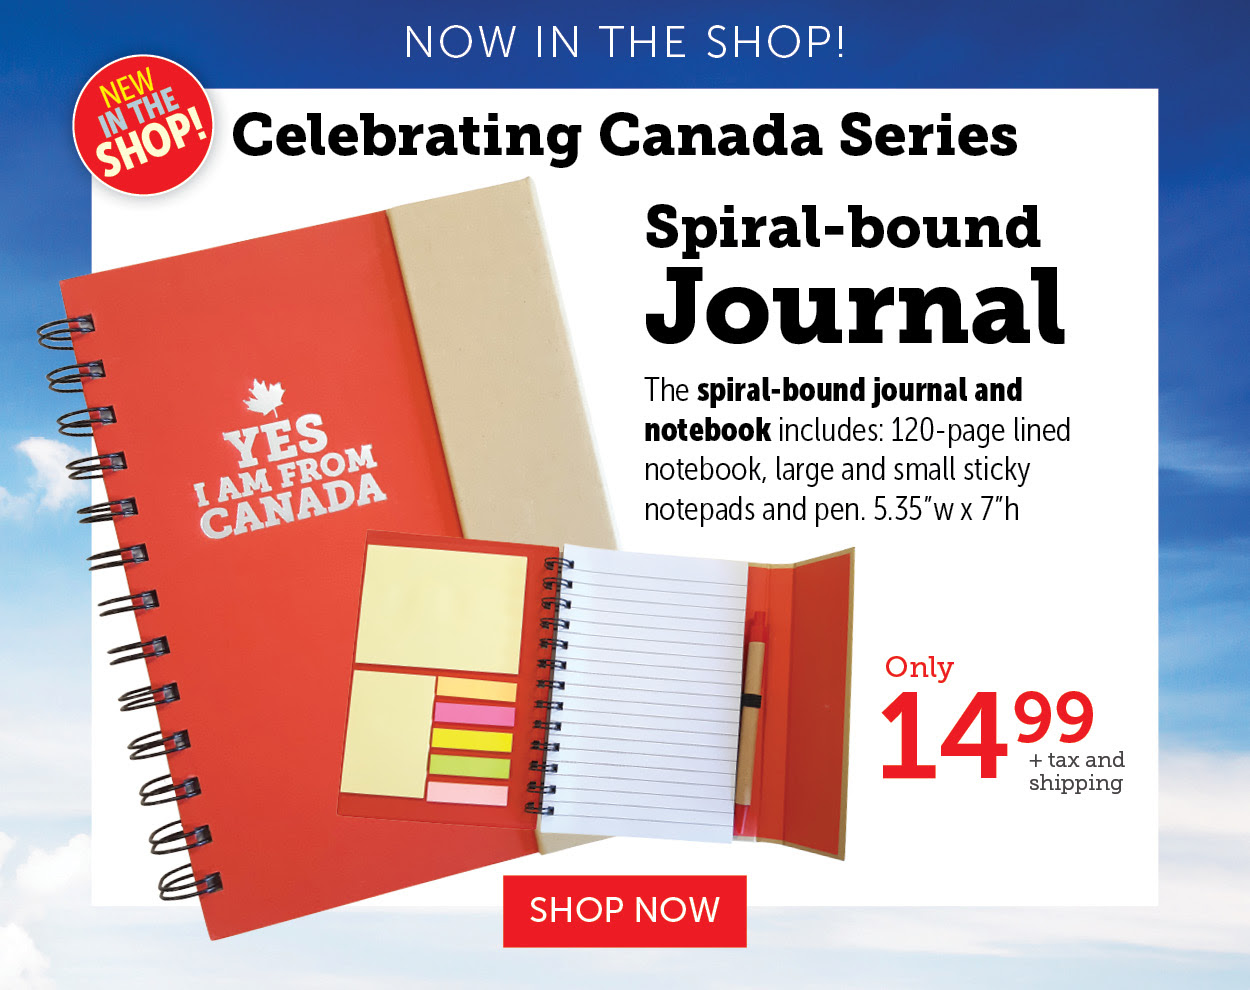 Spiral-bound journal